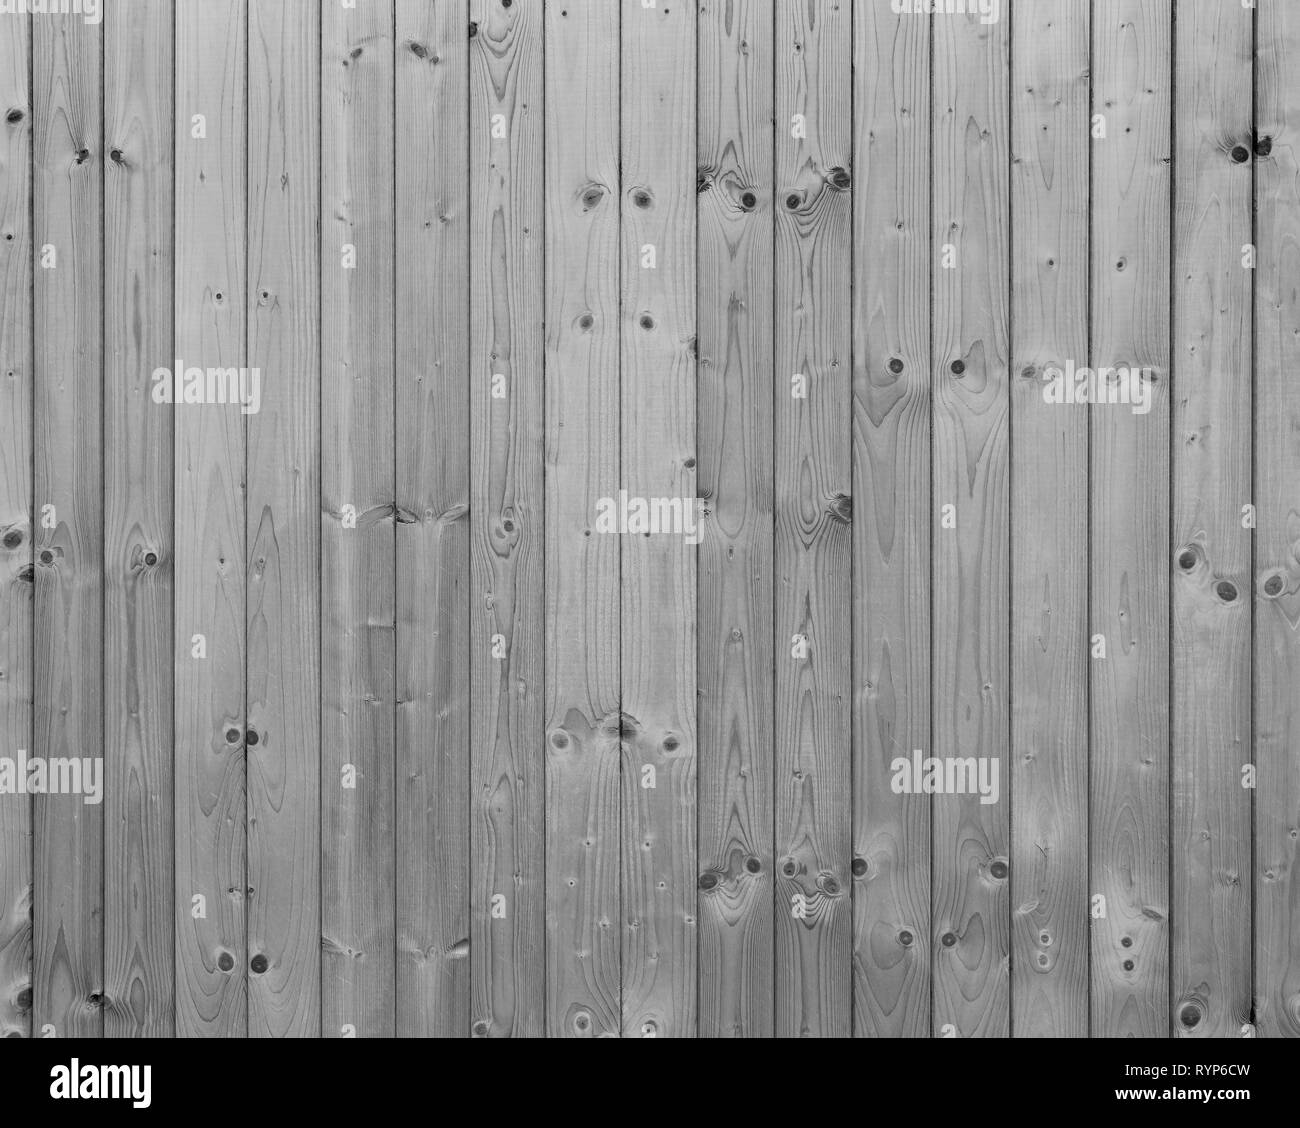 Full frame background of a new, clean and unpainted wood board wall in black and white. Stock Photo